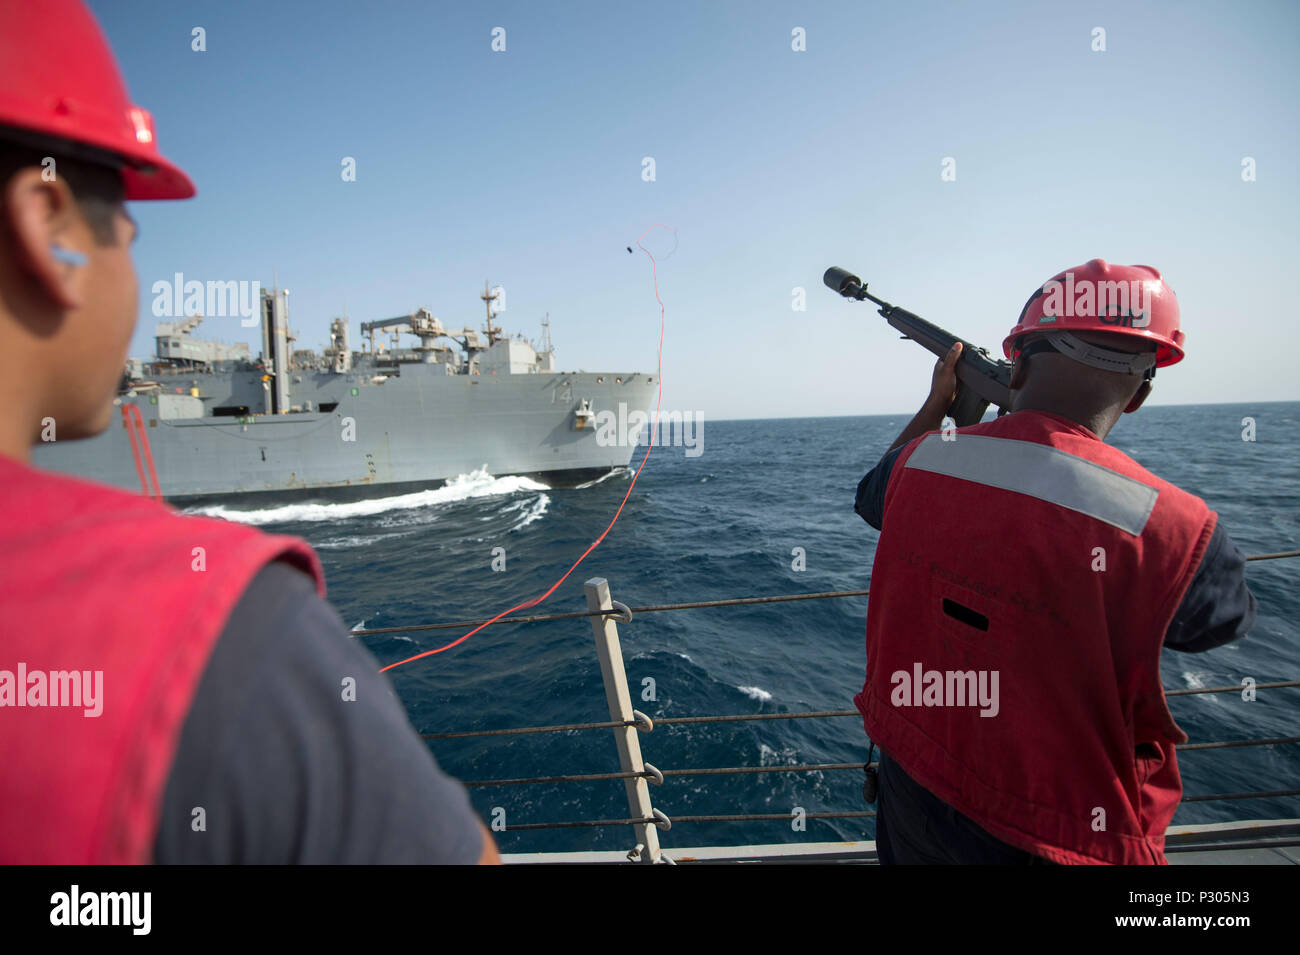 160814-N-DQ503-019     ARABIAN SEA (Aug. 14, 2016) Gunner's Mate 2nd Class Allen Marshall fires a shotline from the guided-missile destroyer USS Roosevelt (DDG 80) to the dry cargo and ammunition ship USNS Cesar Chavez (T-AKE 14) during a replenishment-at-sea. Roosevelt, deployed as part of the Eisenhower Carrier Strike Group, is supporting maritime security operations and theater security cooperation efforts in the U.S. 5th Fleet area of operations. (U.S. Navy photo by Mass Communication Specialist 3rd Class Taylor A. Elberg/Released) - Stock Image